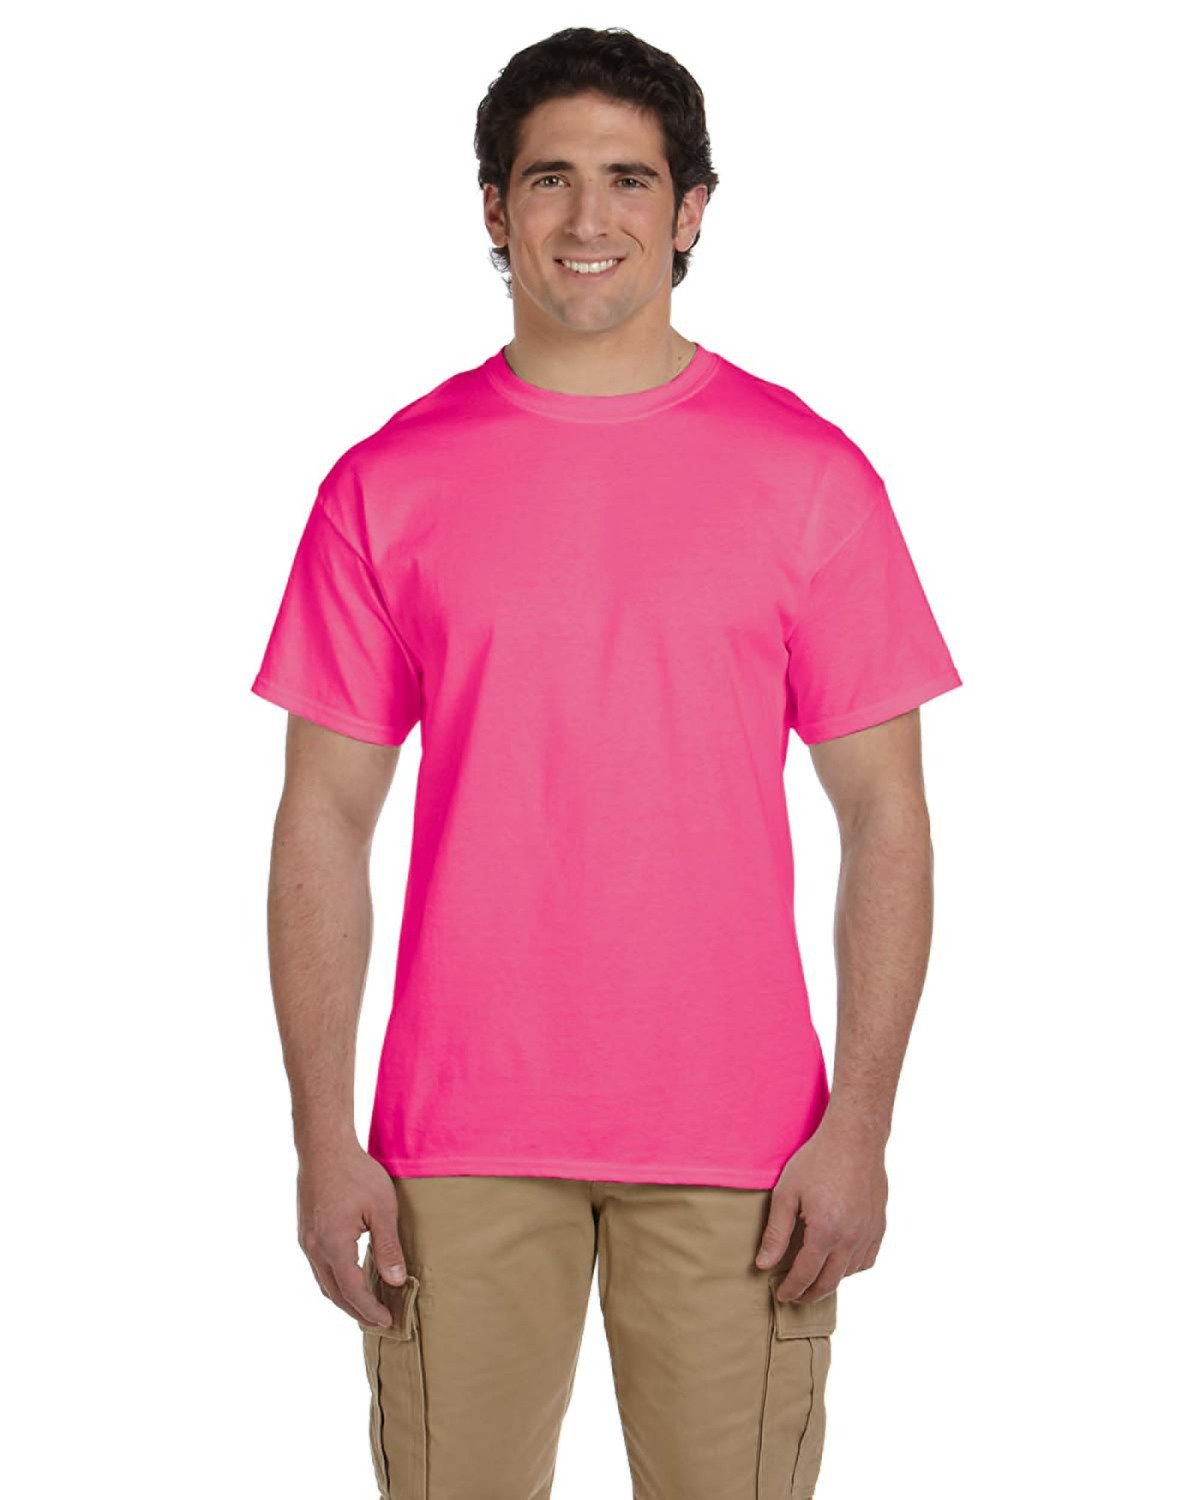 Fruit of the Loom Adult HD Cotton™ T-Shirt RETRO HTH PINK